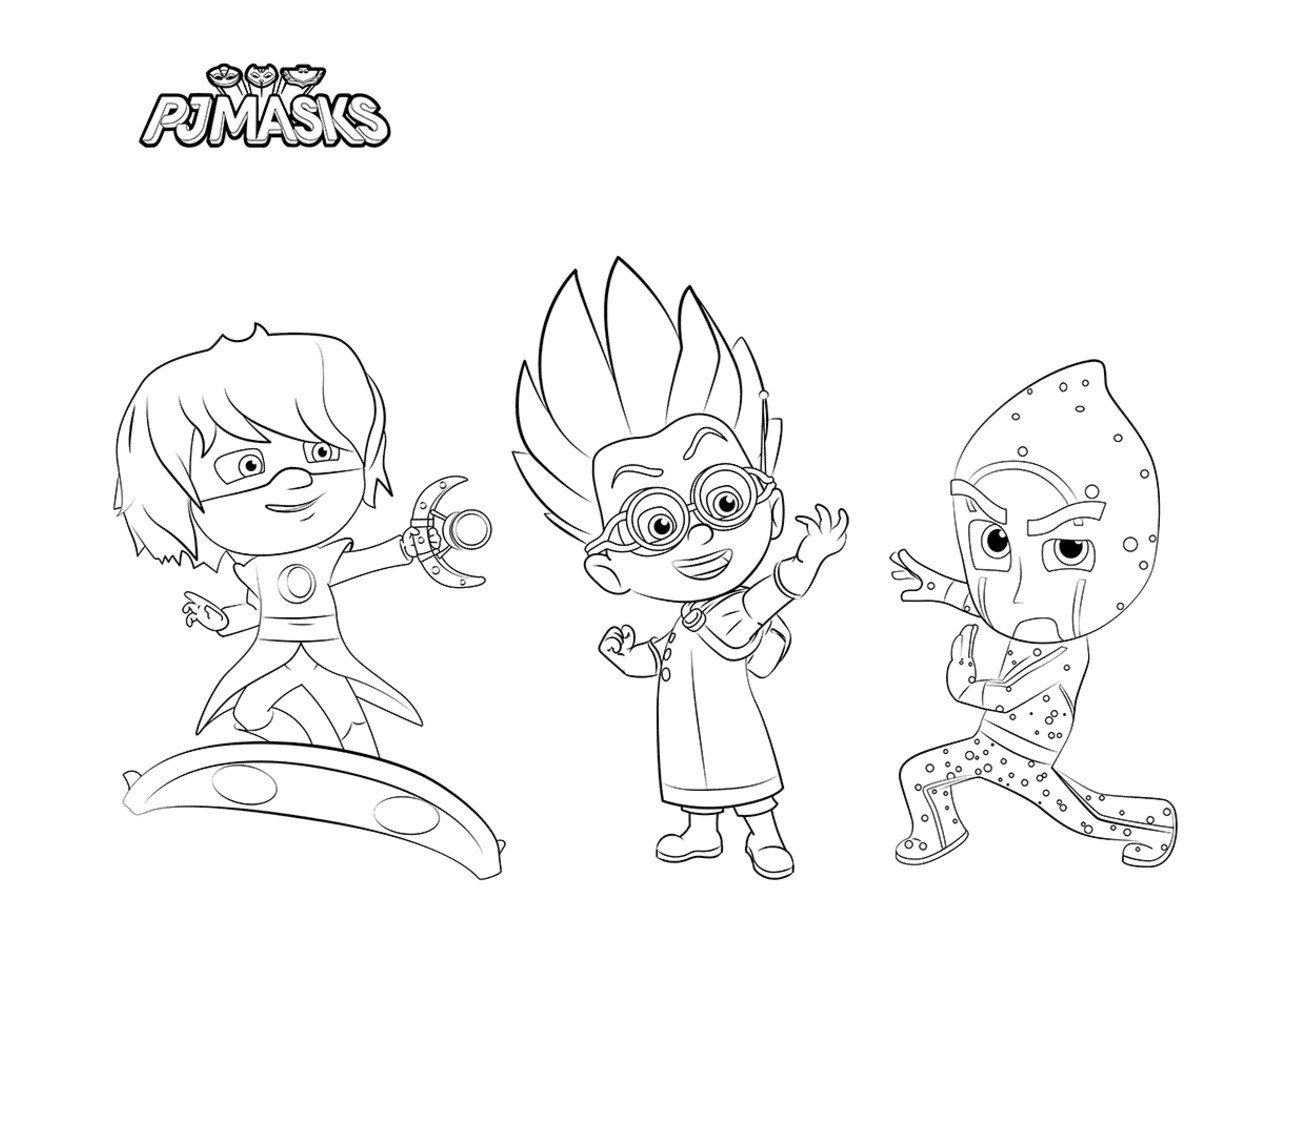 photograph relating to Printable Pj Masks Coloring Pages called PJ Masks Bash Printables for No cost